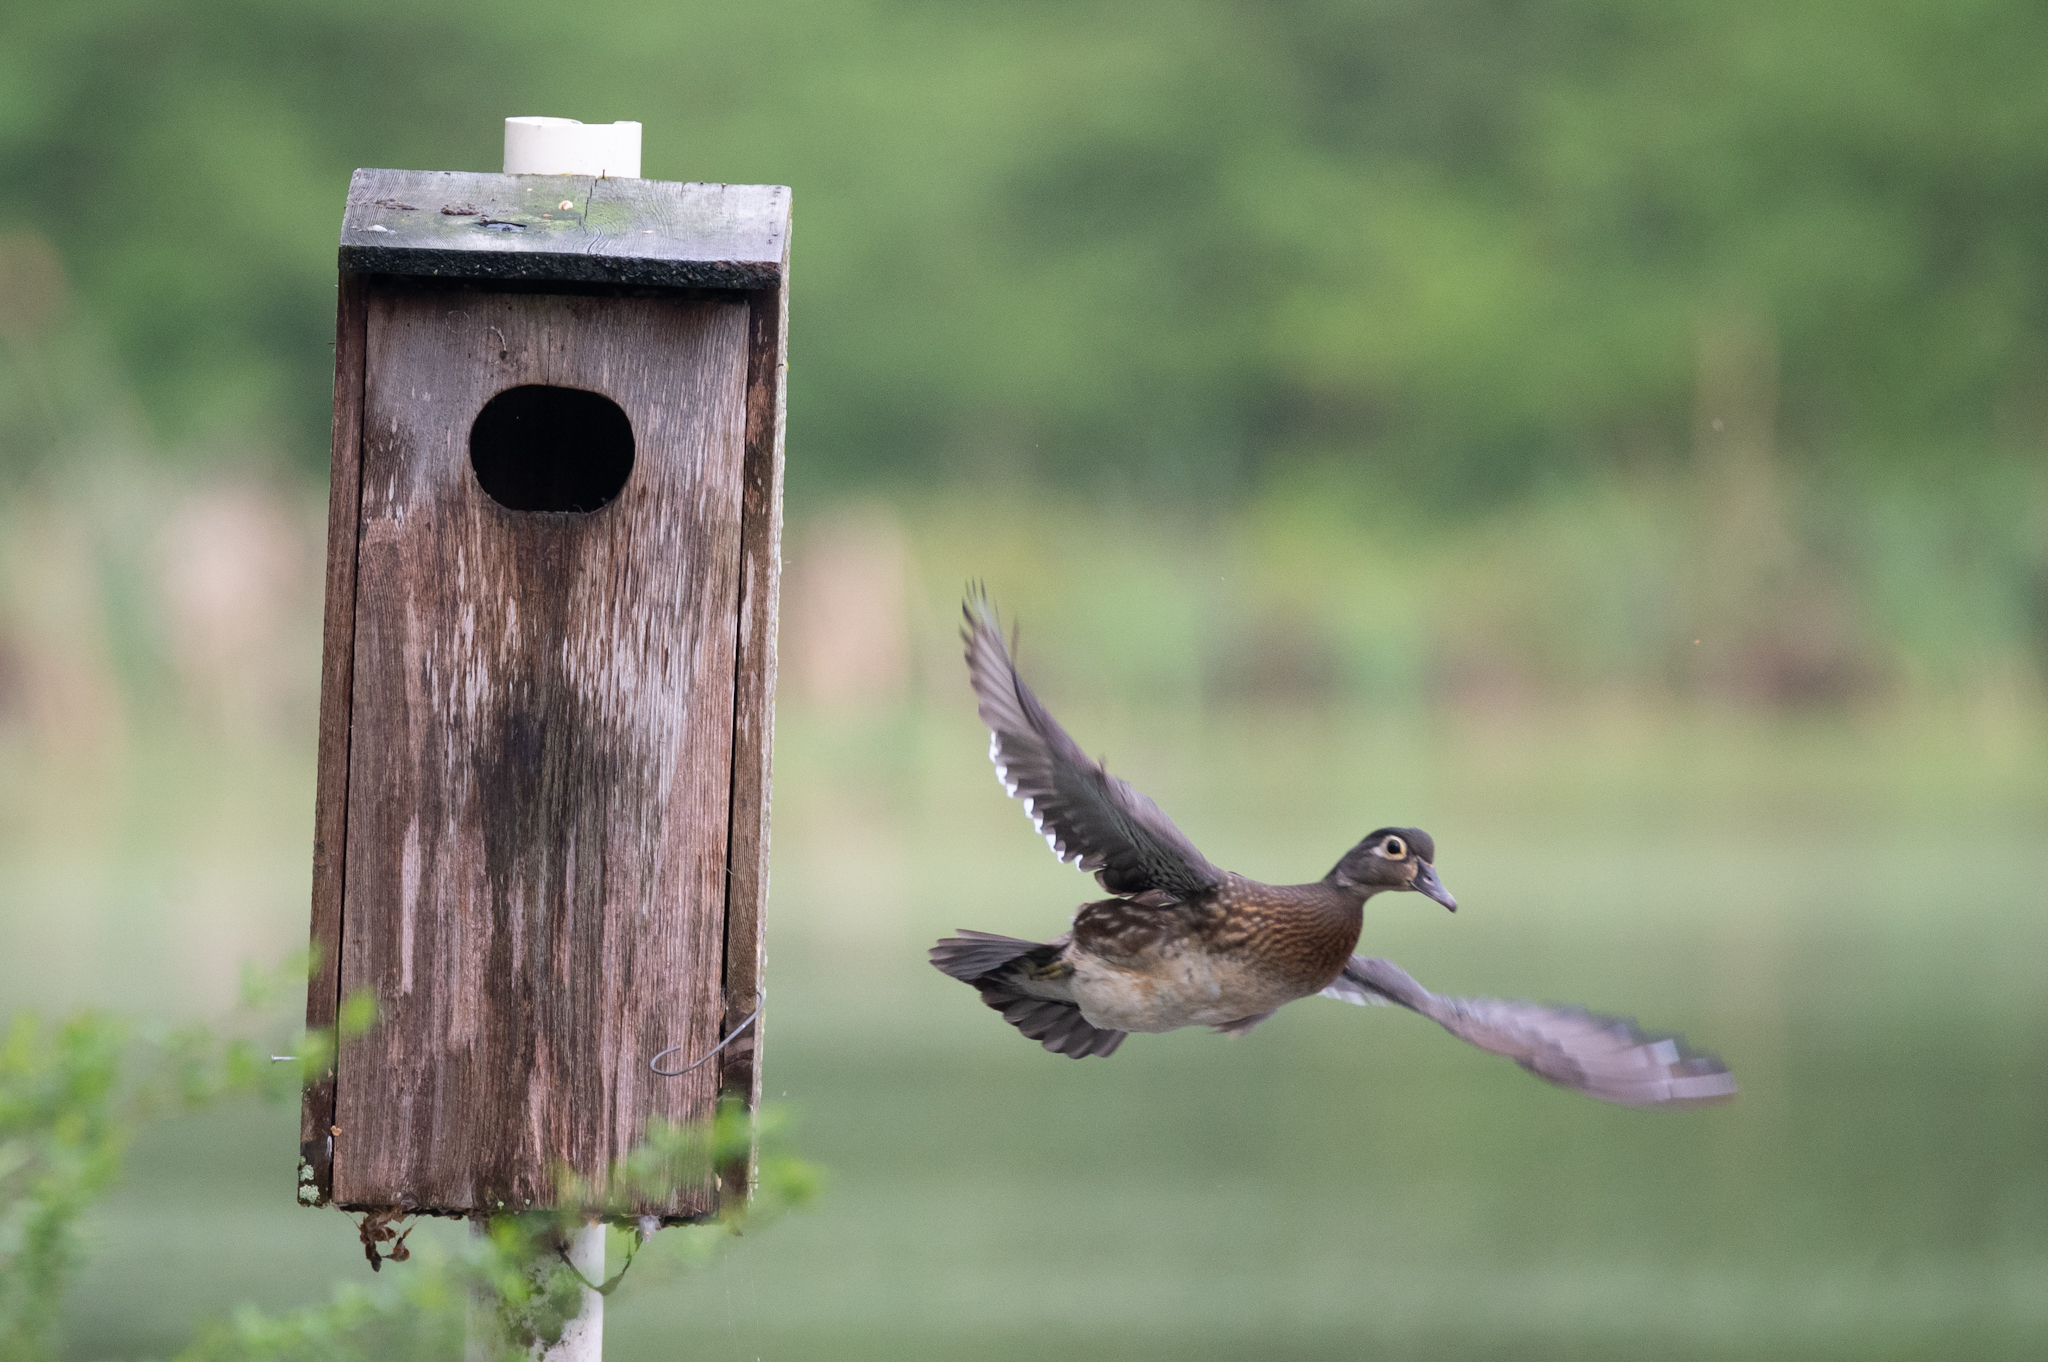 hen-wood-duck-leaving-her-nest-for-morning-feed-by-jeremy-peele